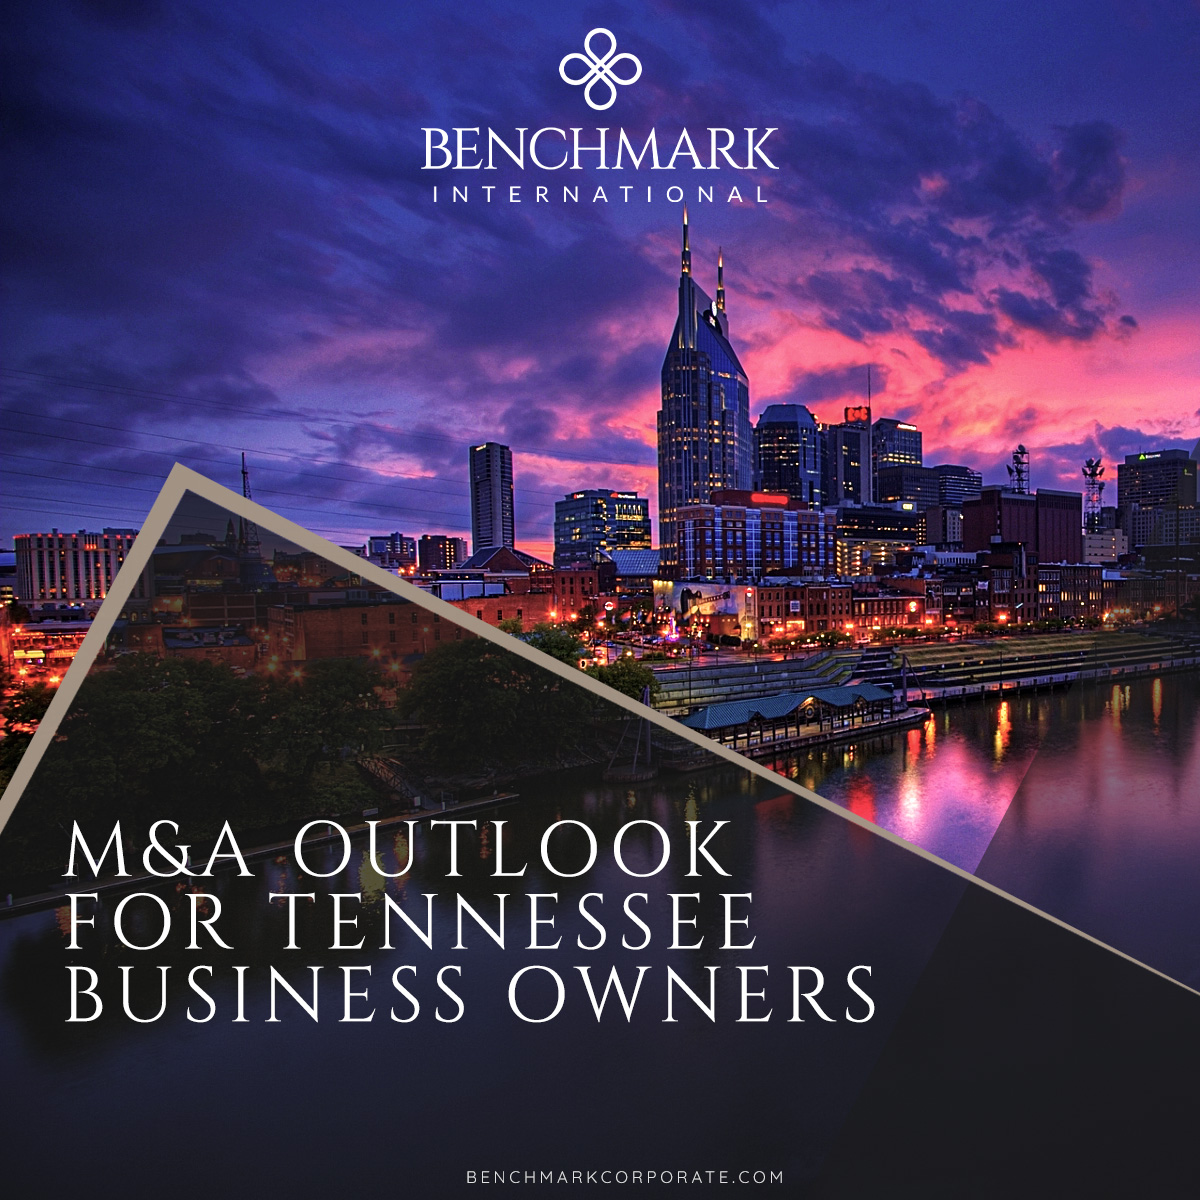 M&A-Outlook-Tennessee-Social